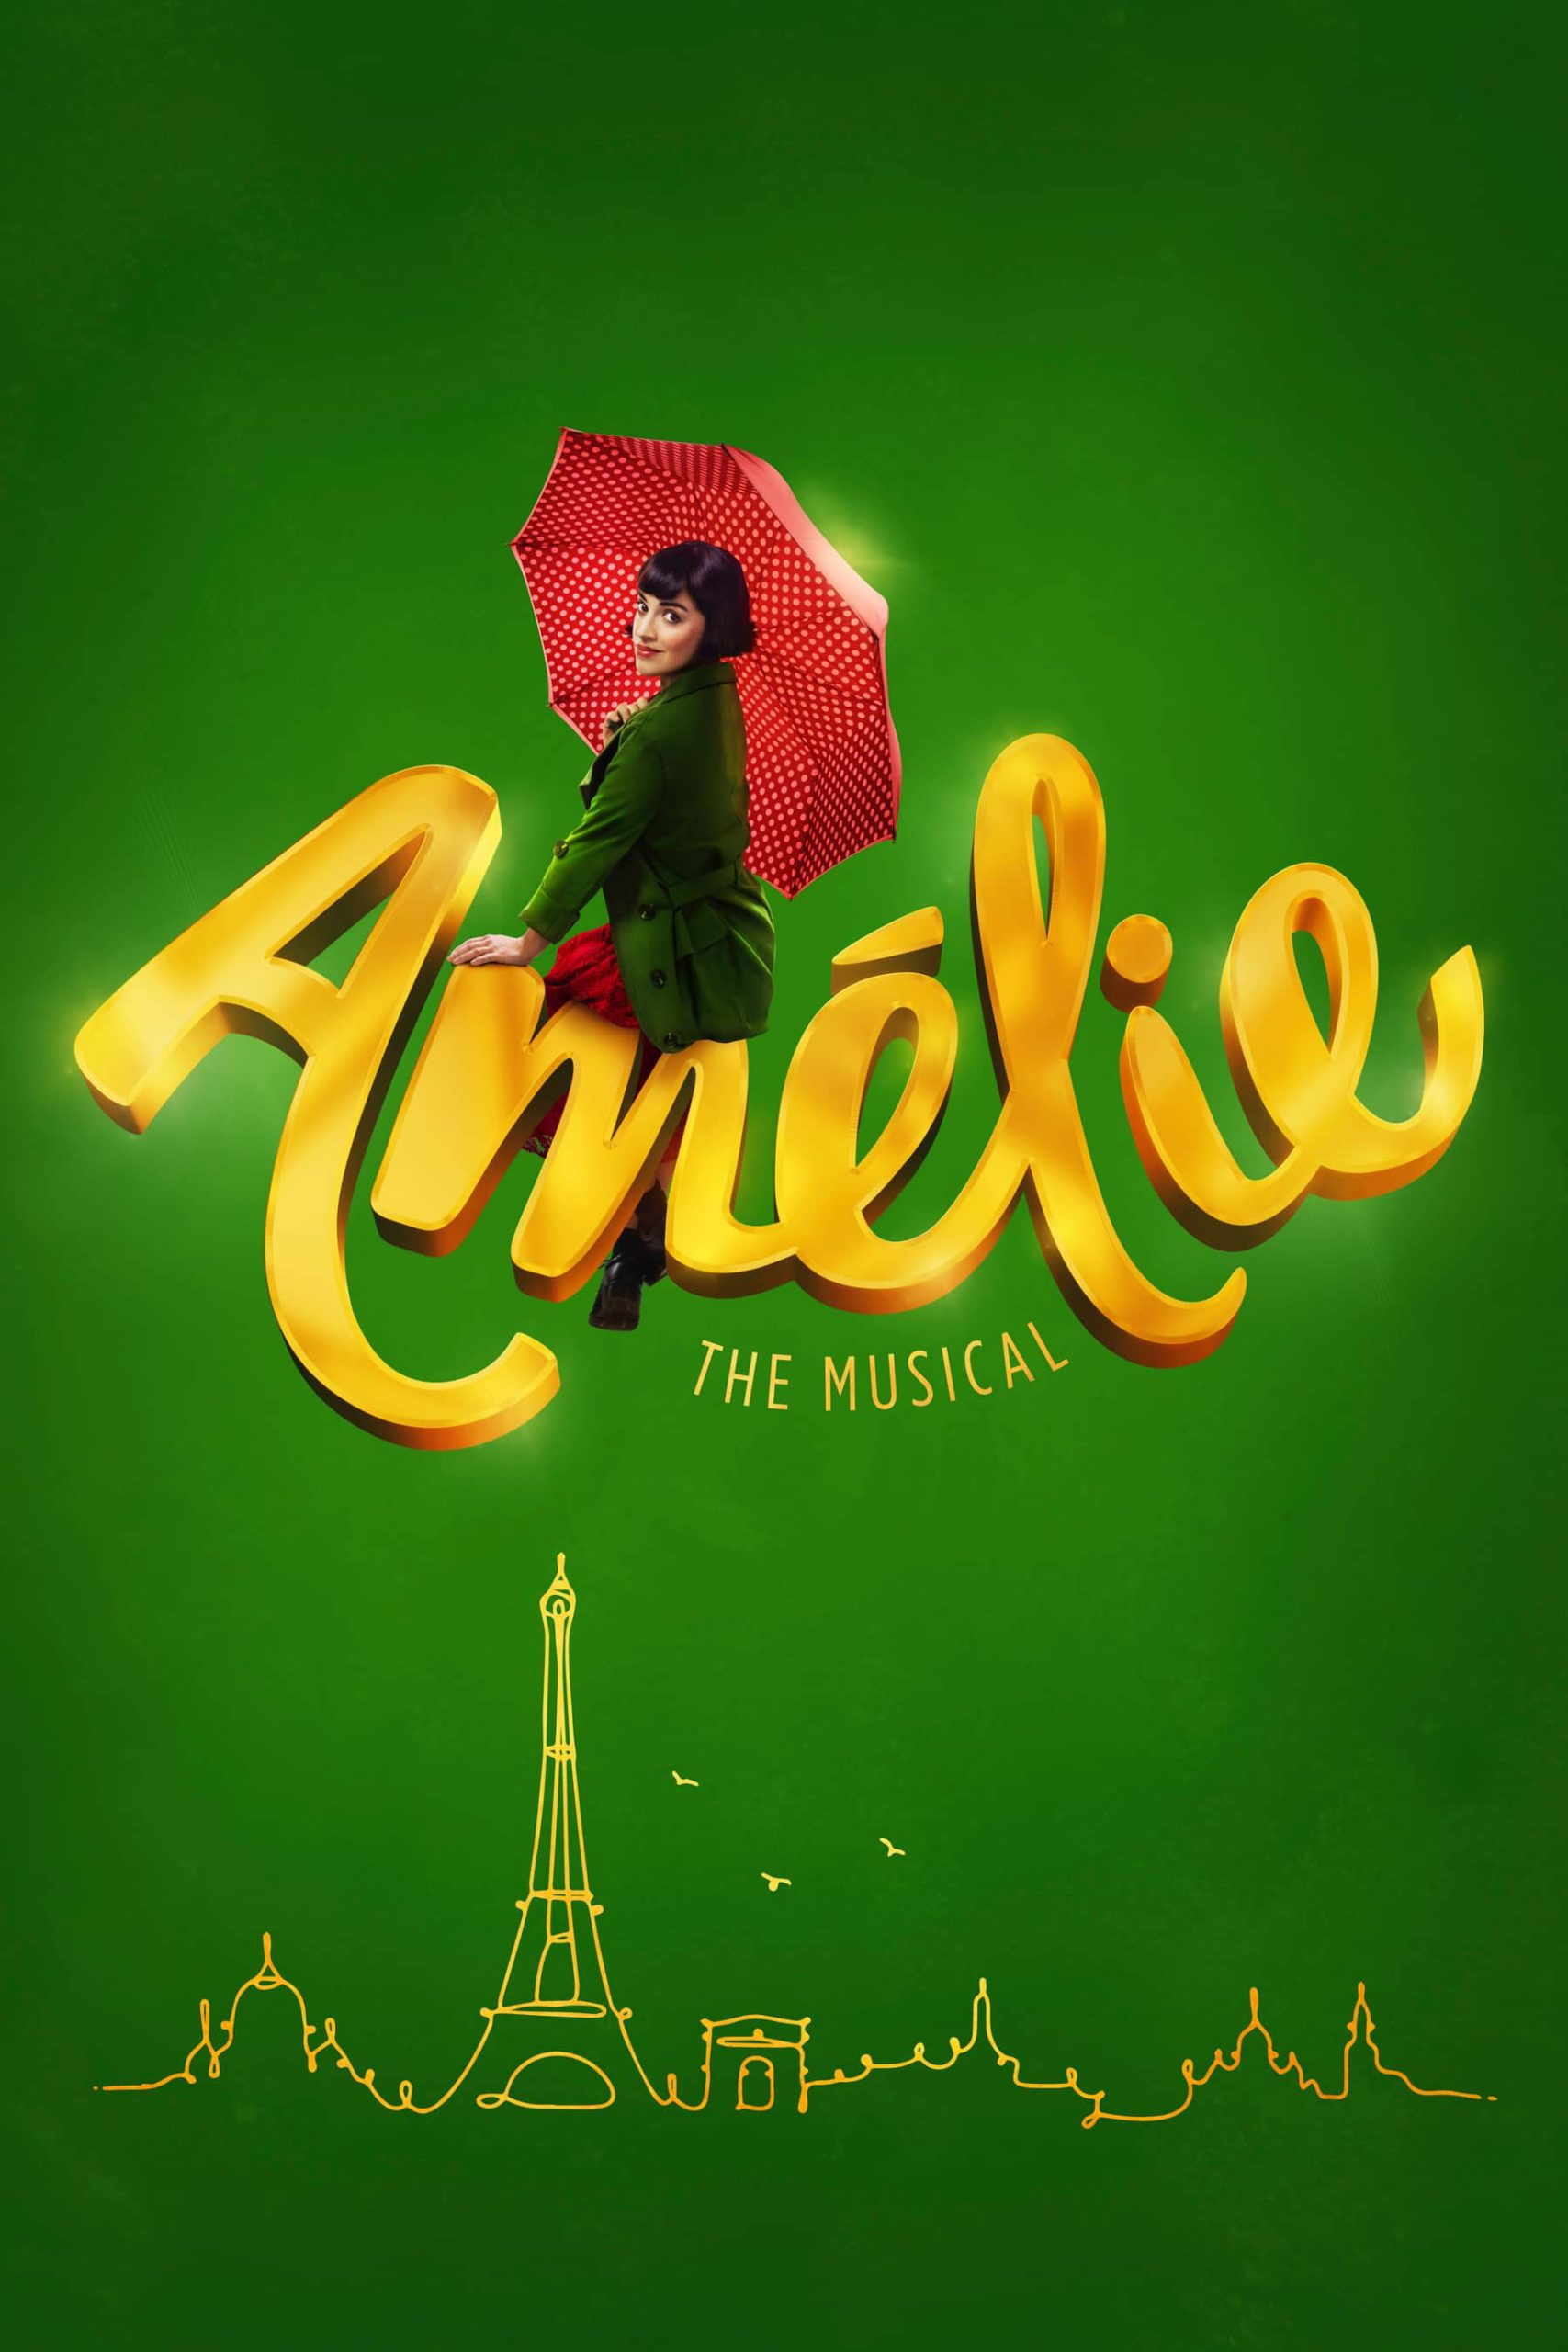 Amelie Musical poster image